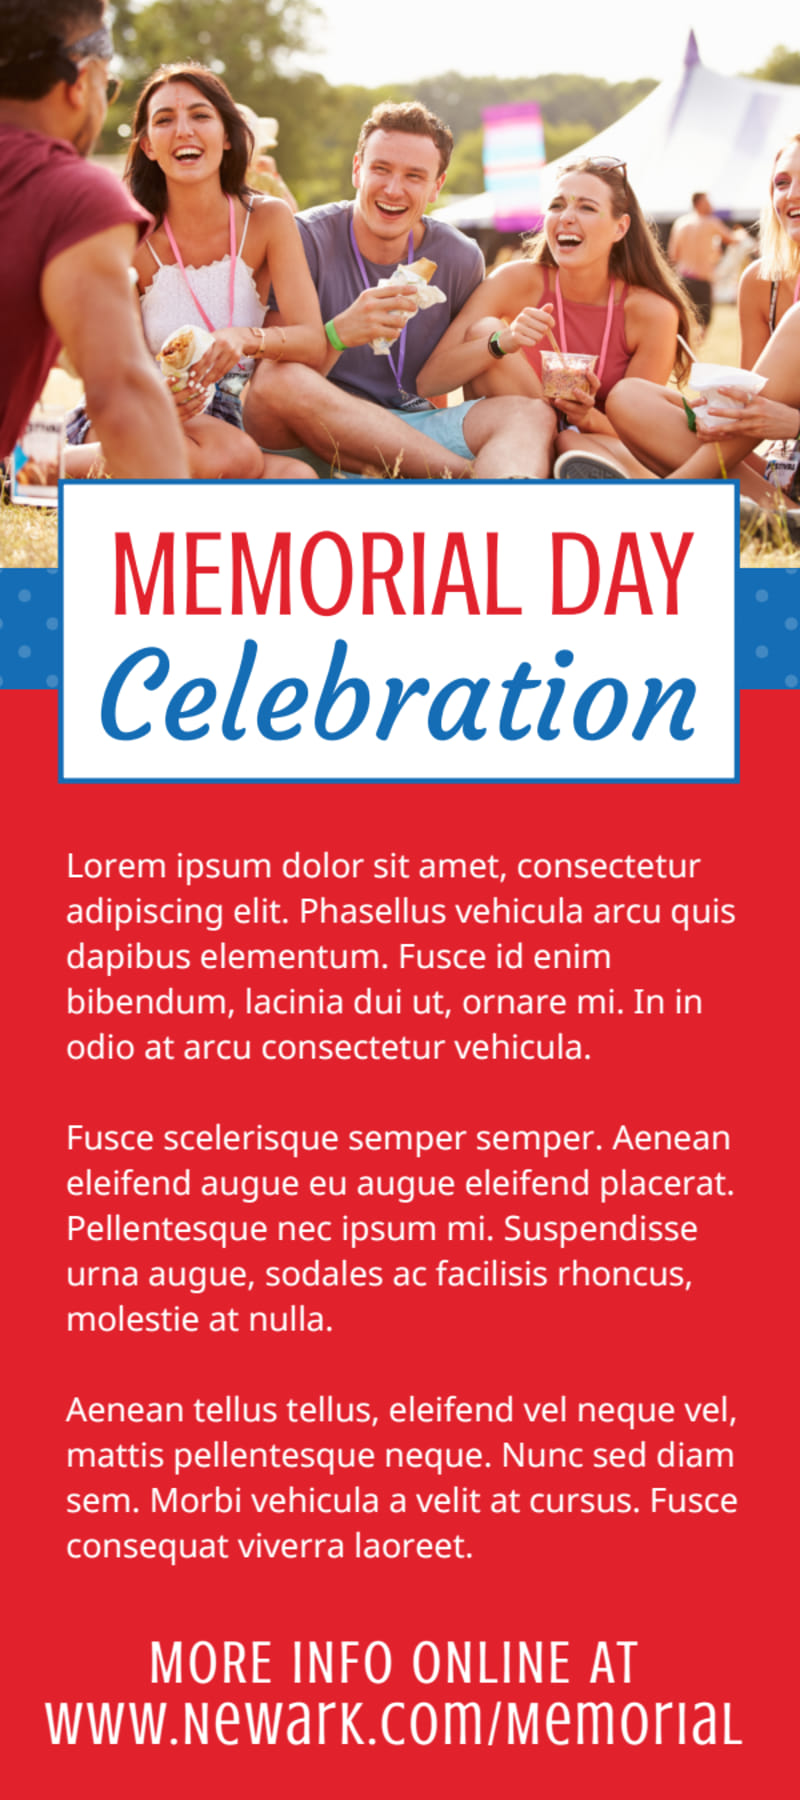 Memorial Day Celebration Flyer Template Preview 3